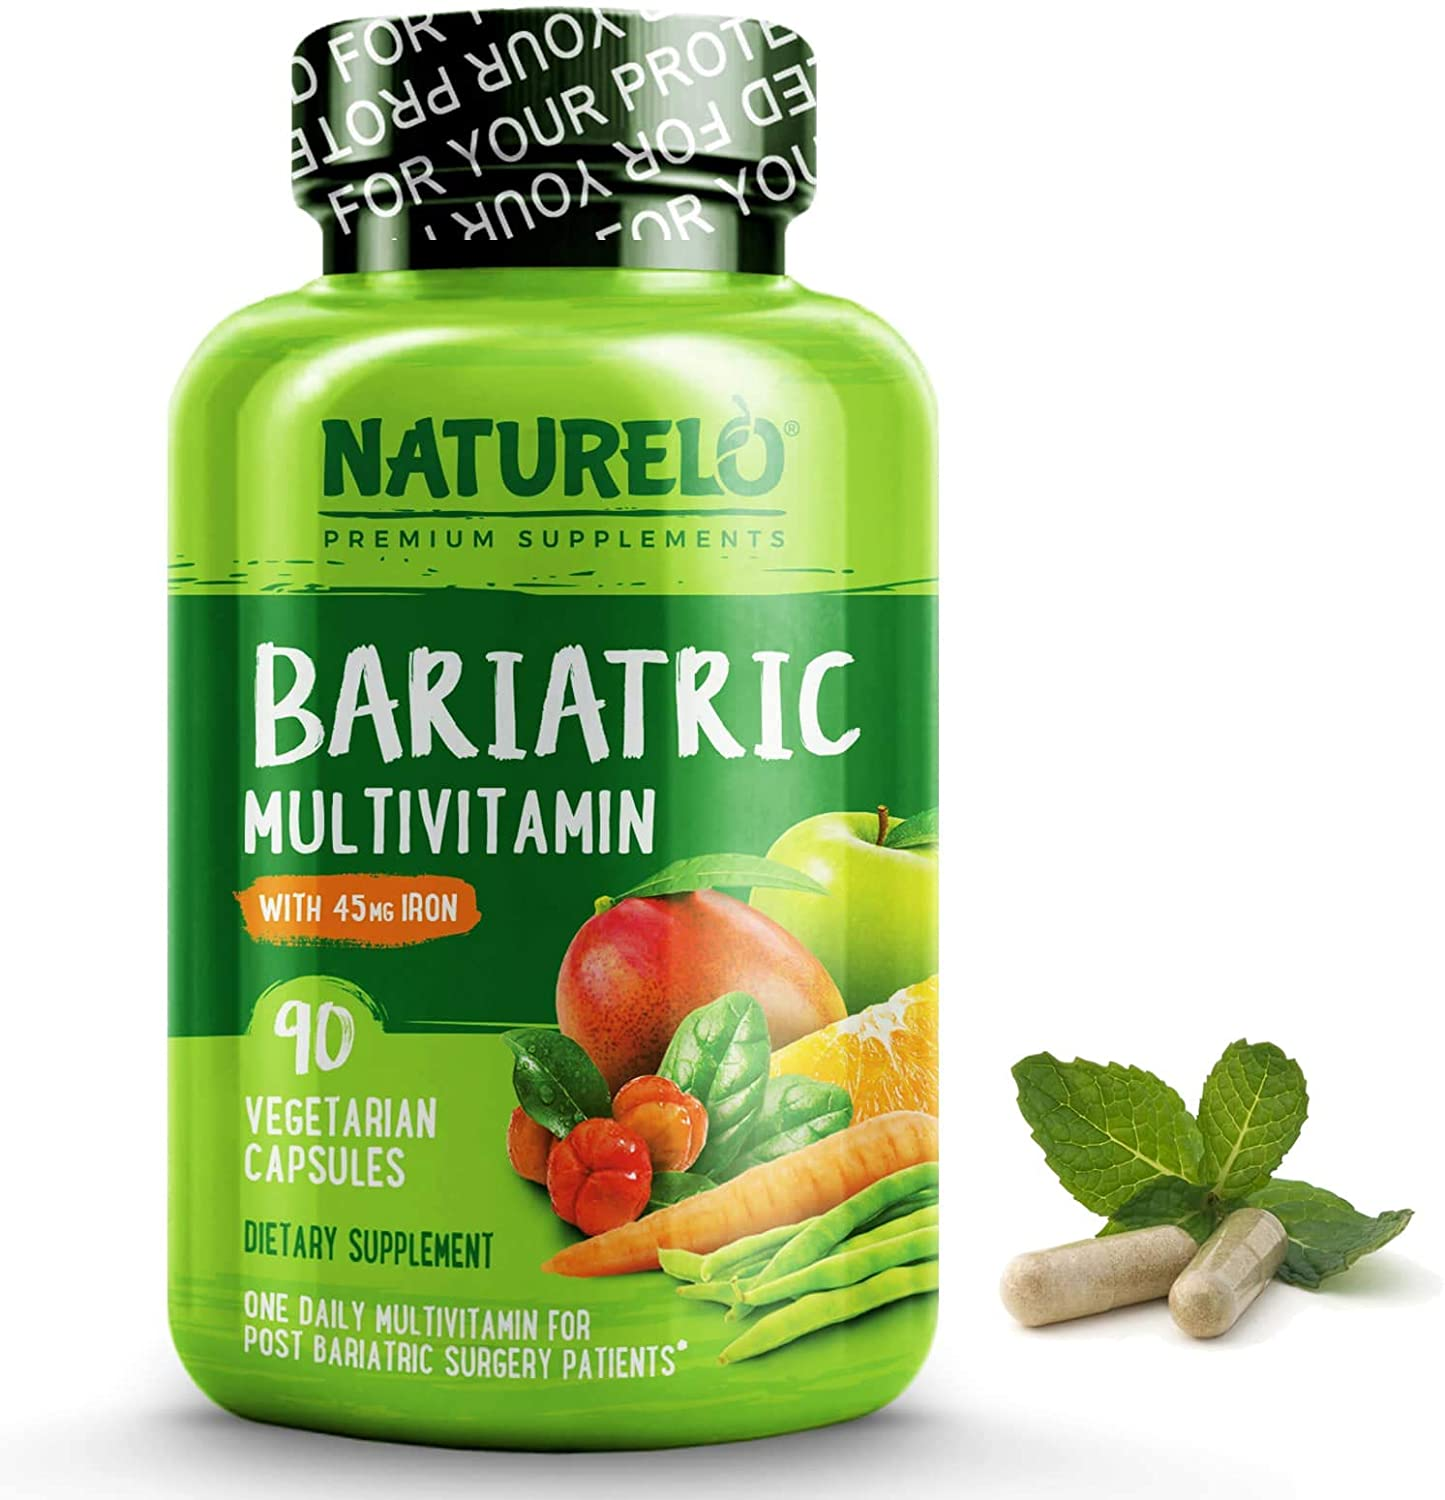 NATURELO Bariatric Multivitamin One Daily with 36 mg Iron - Best Supplement for Post Gastric Bypass Surgery Patients - Natural Whole Food Nutrition - 90 Veggie Capsules